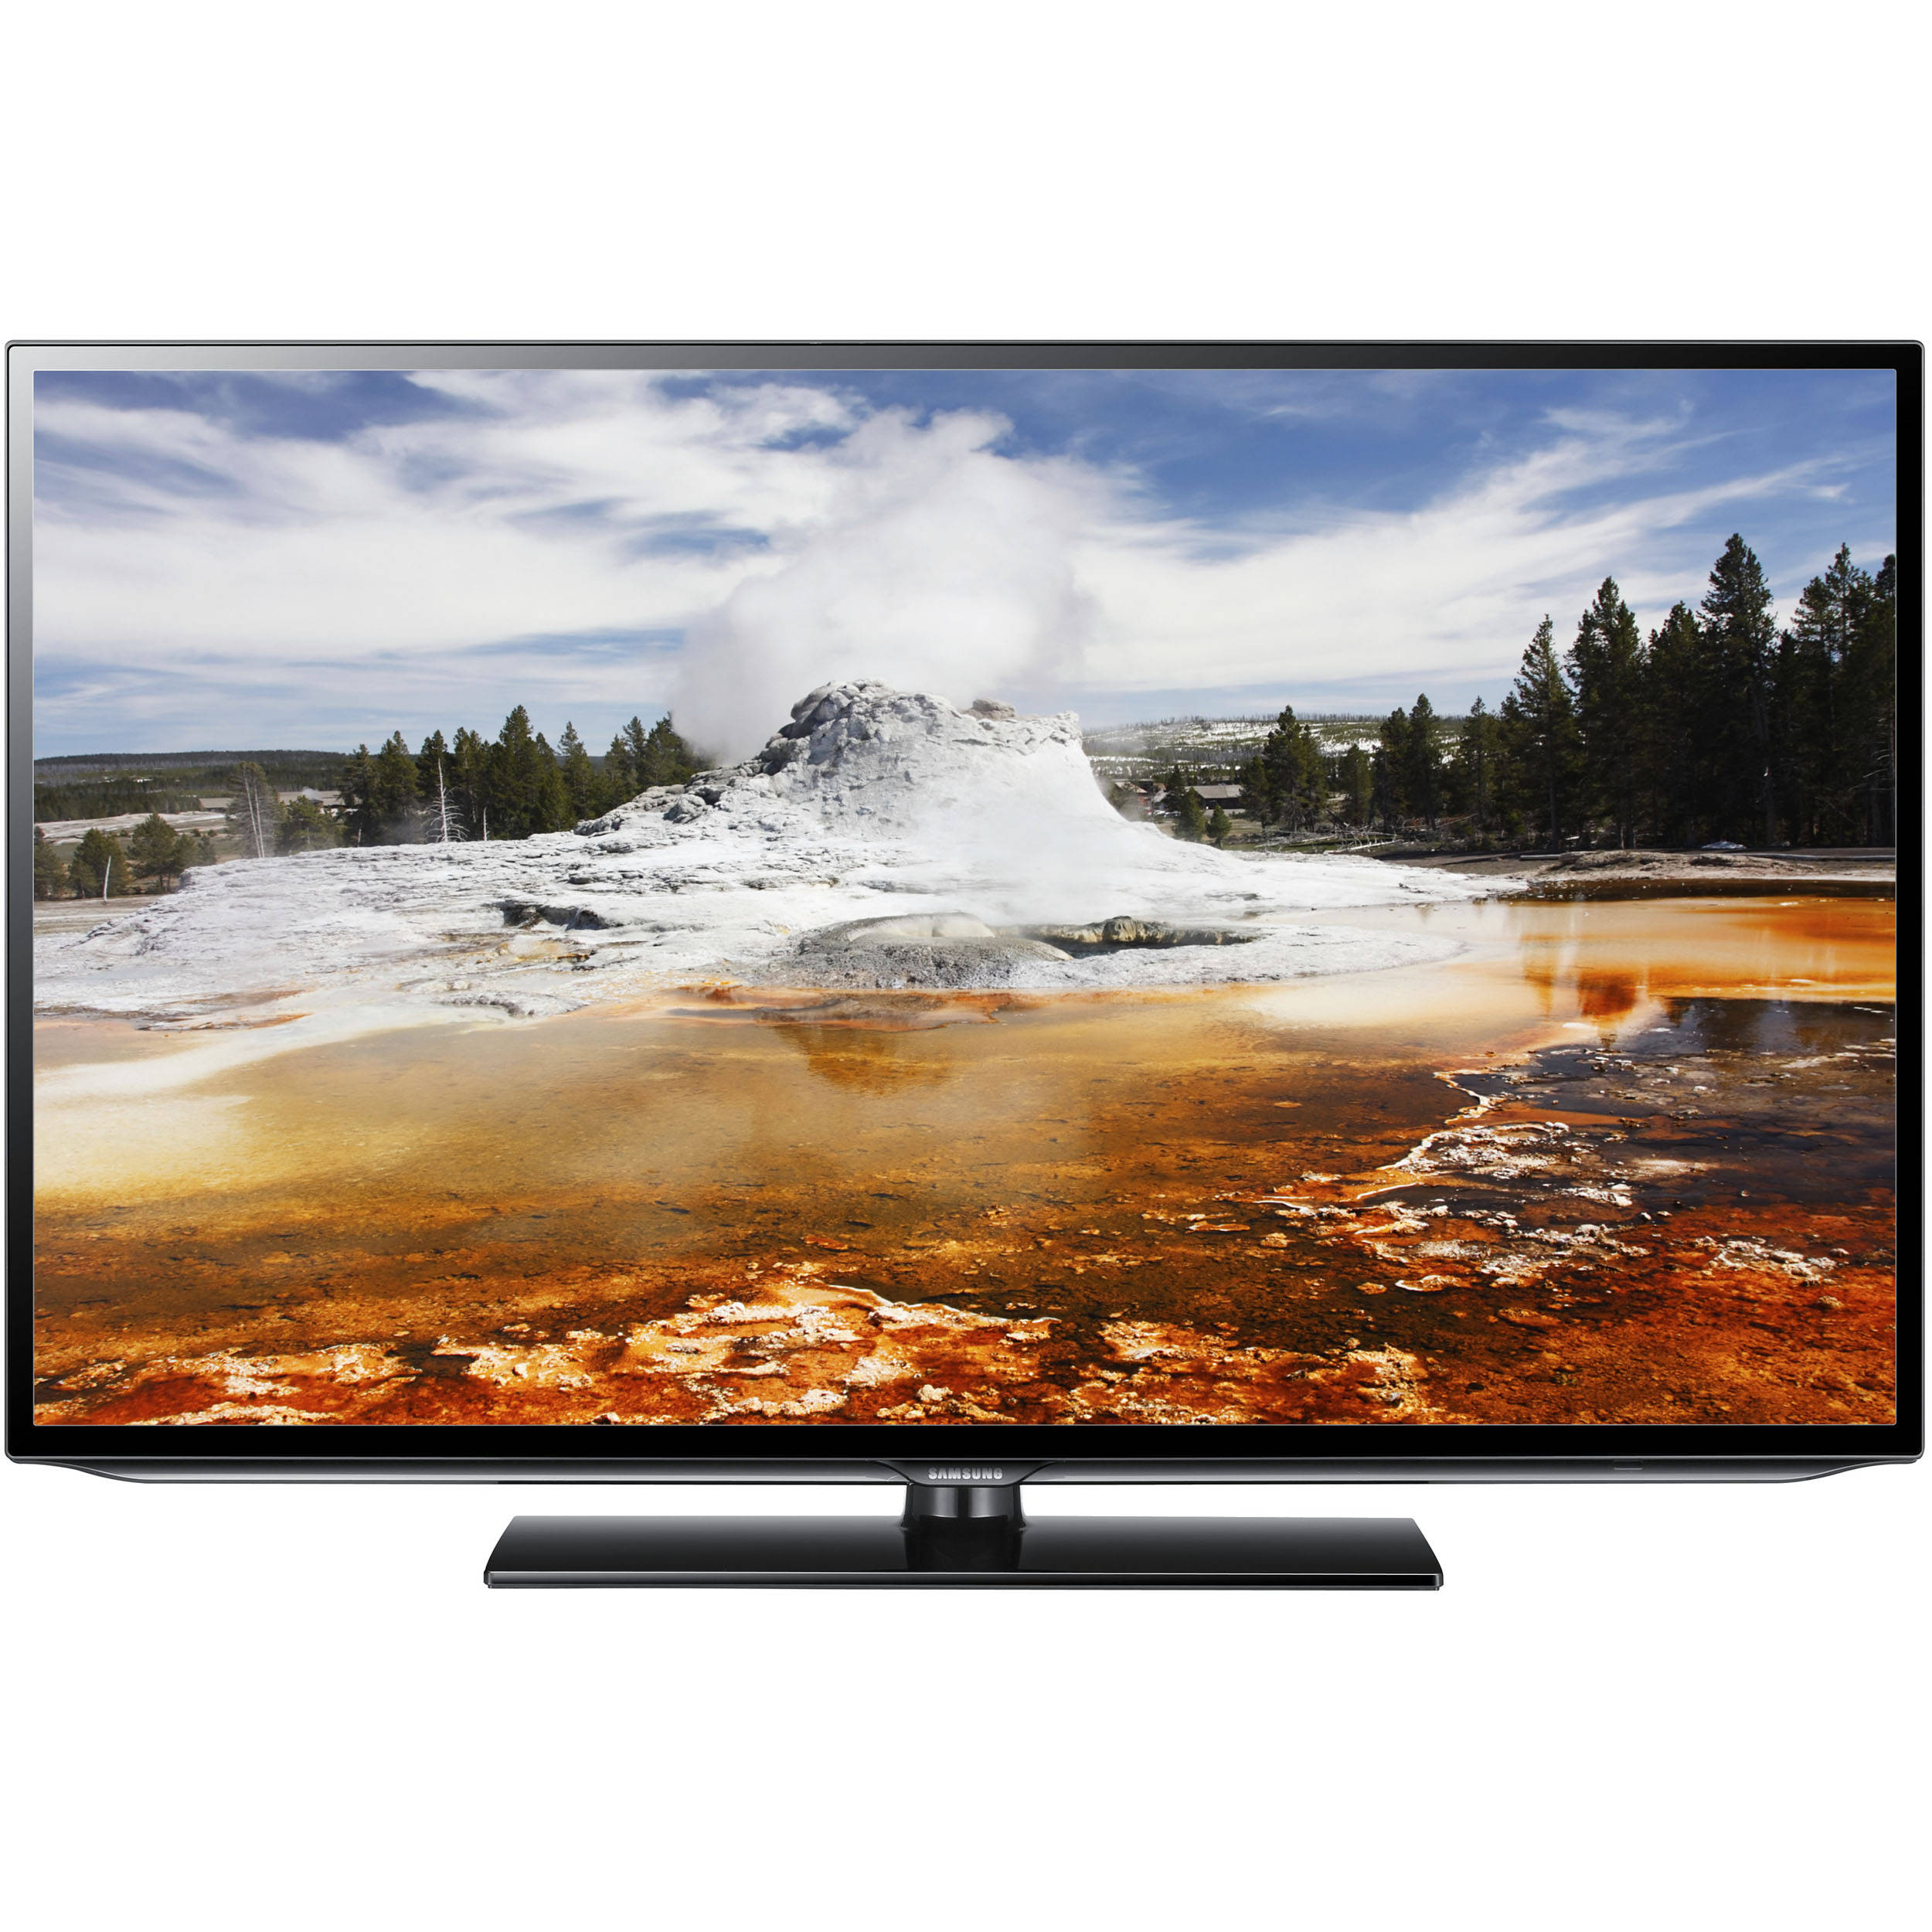 Samsung Un40eh5000 40 Class Led Hdtv Un40eh5000fxza Bh Tvs Together With 42 Inch Plasma Tv Circuit Boards On